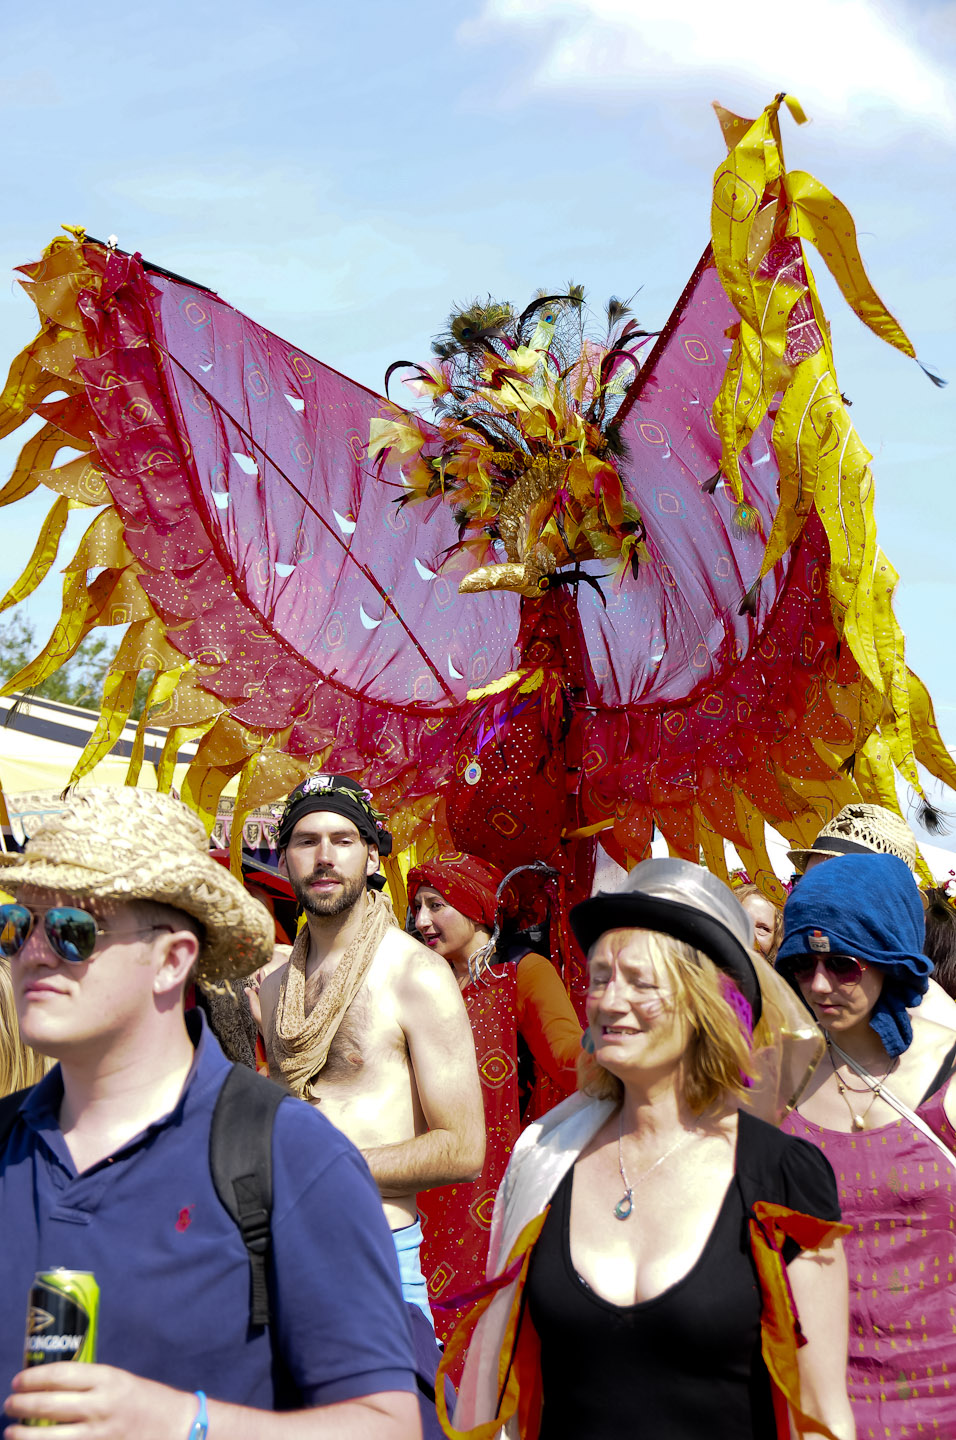 Glastonbury2013©LPDP_130626_004.jpg